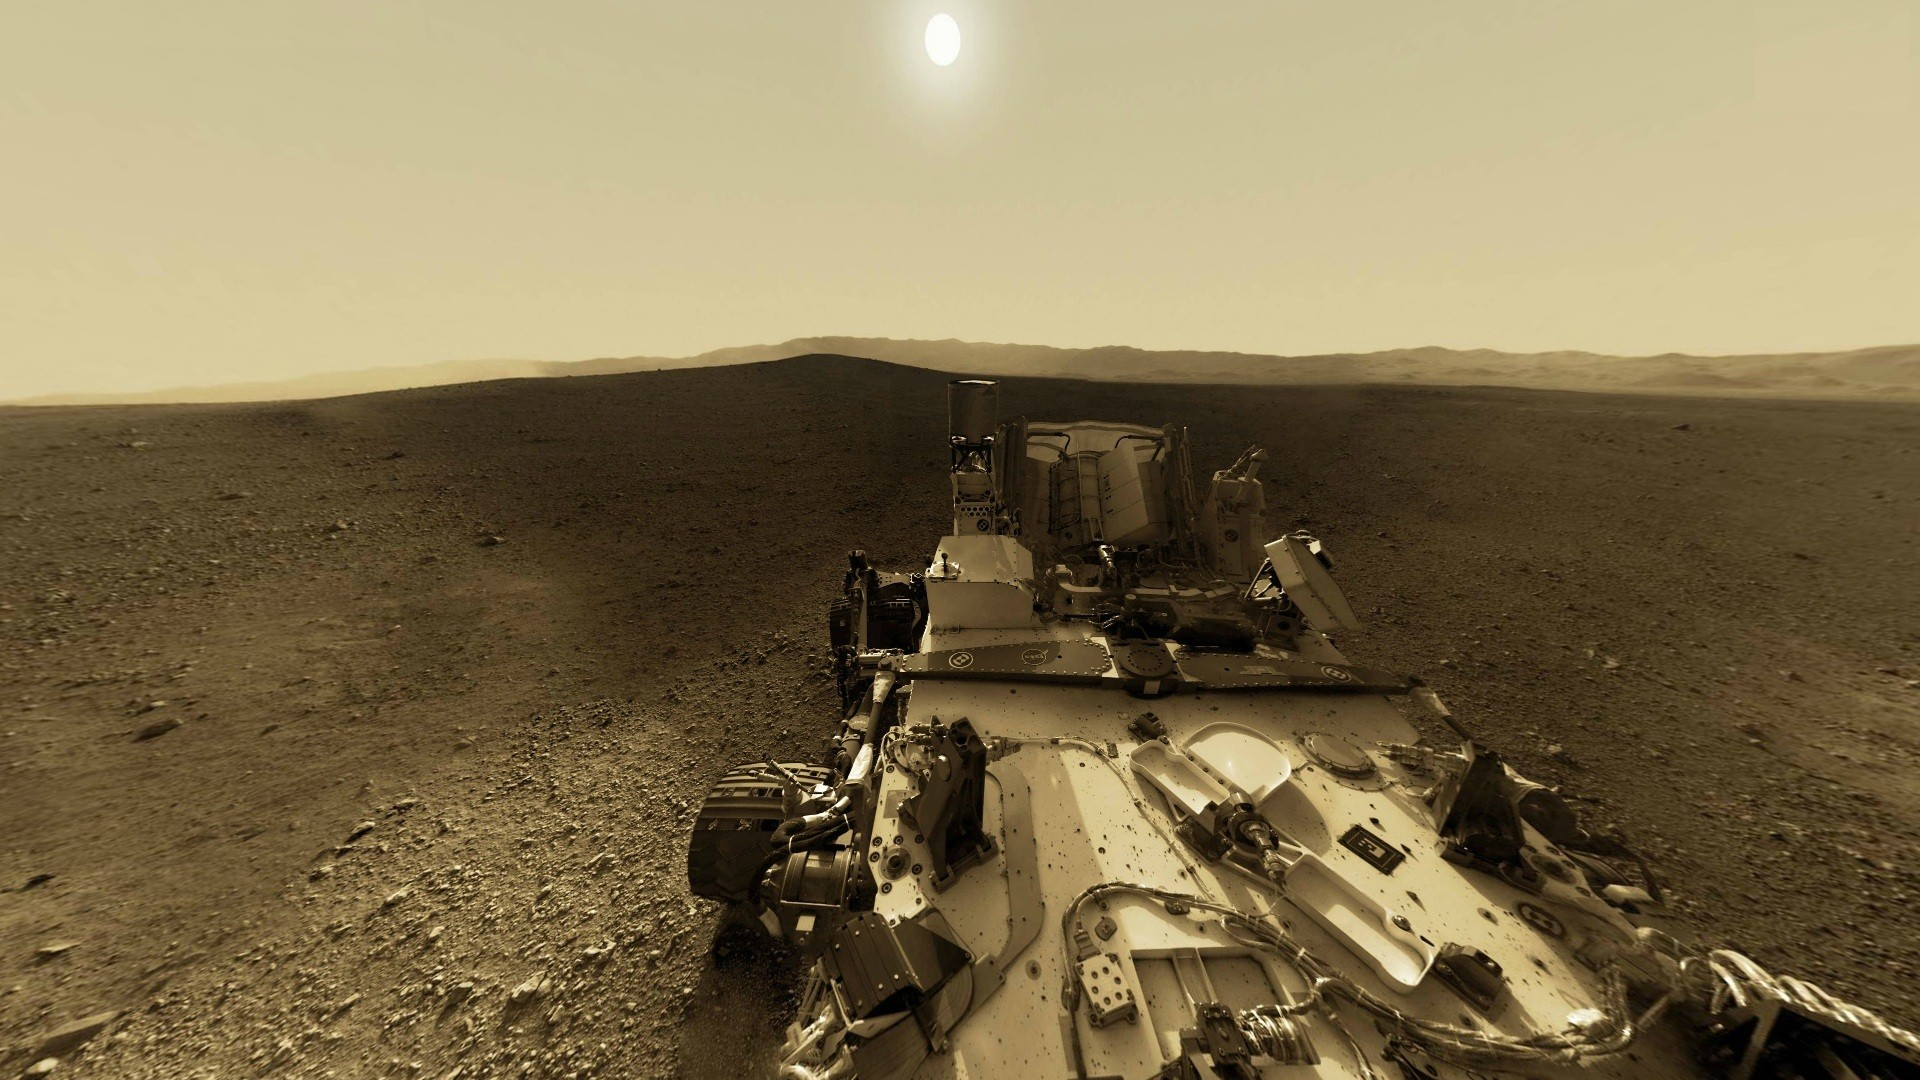 curiosity rover on mars background - photo #13